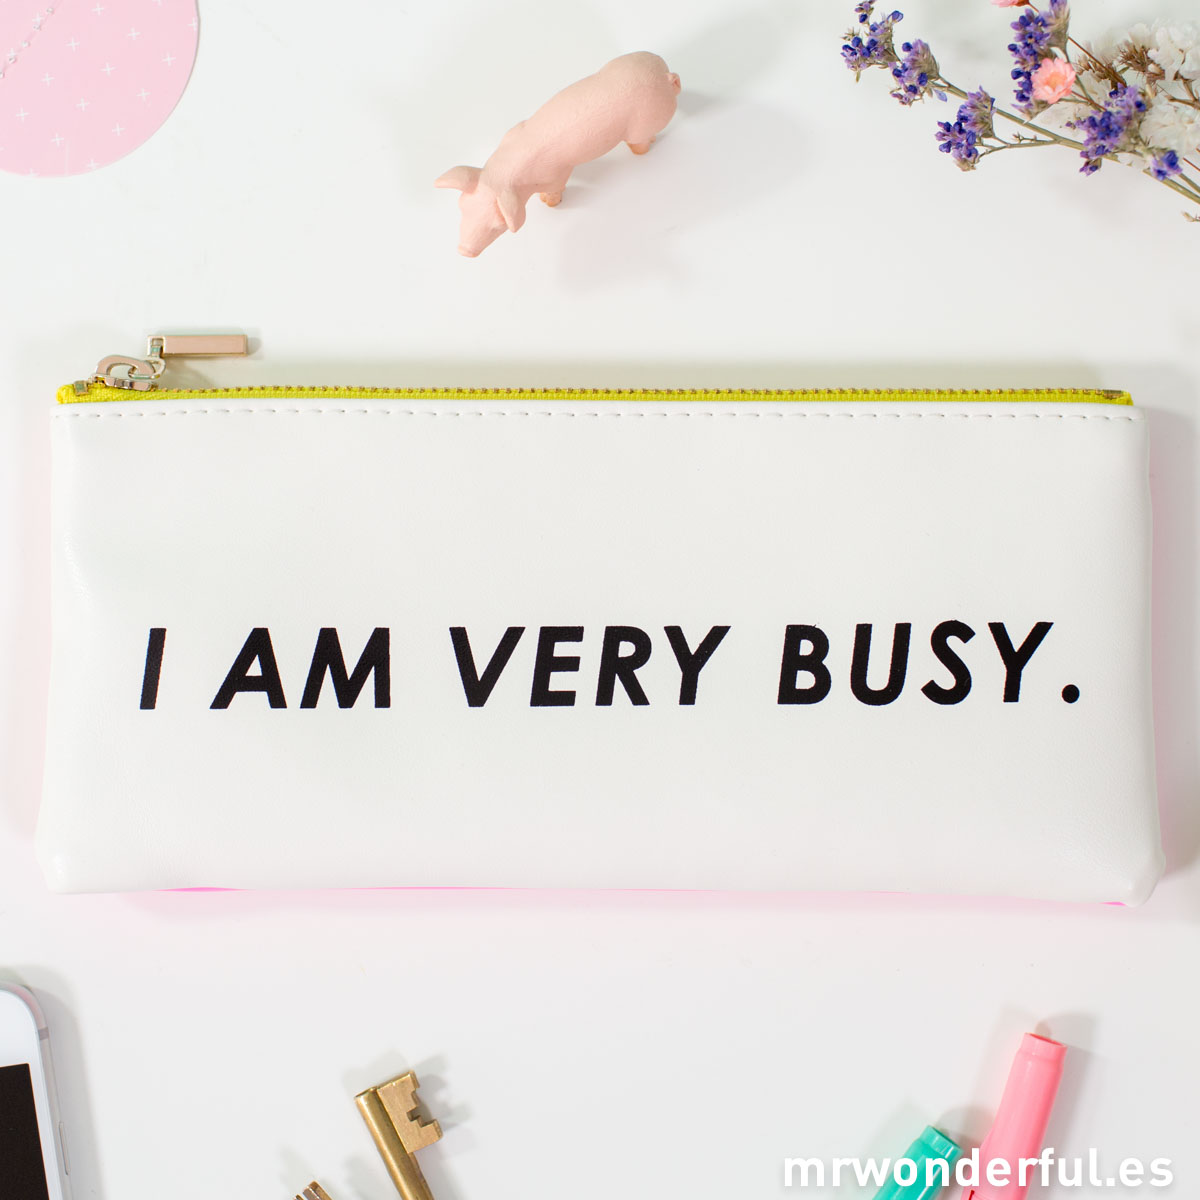 mrwonderful_40227_Estuche-cremallera-I-am-very-busy-5